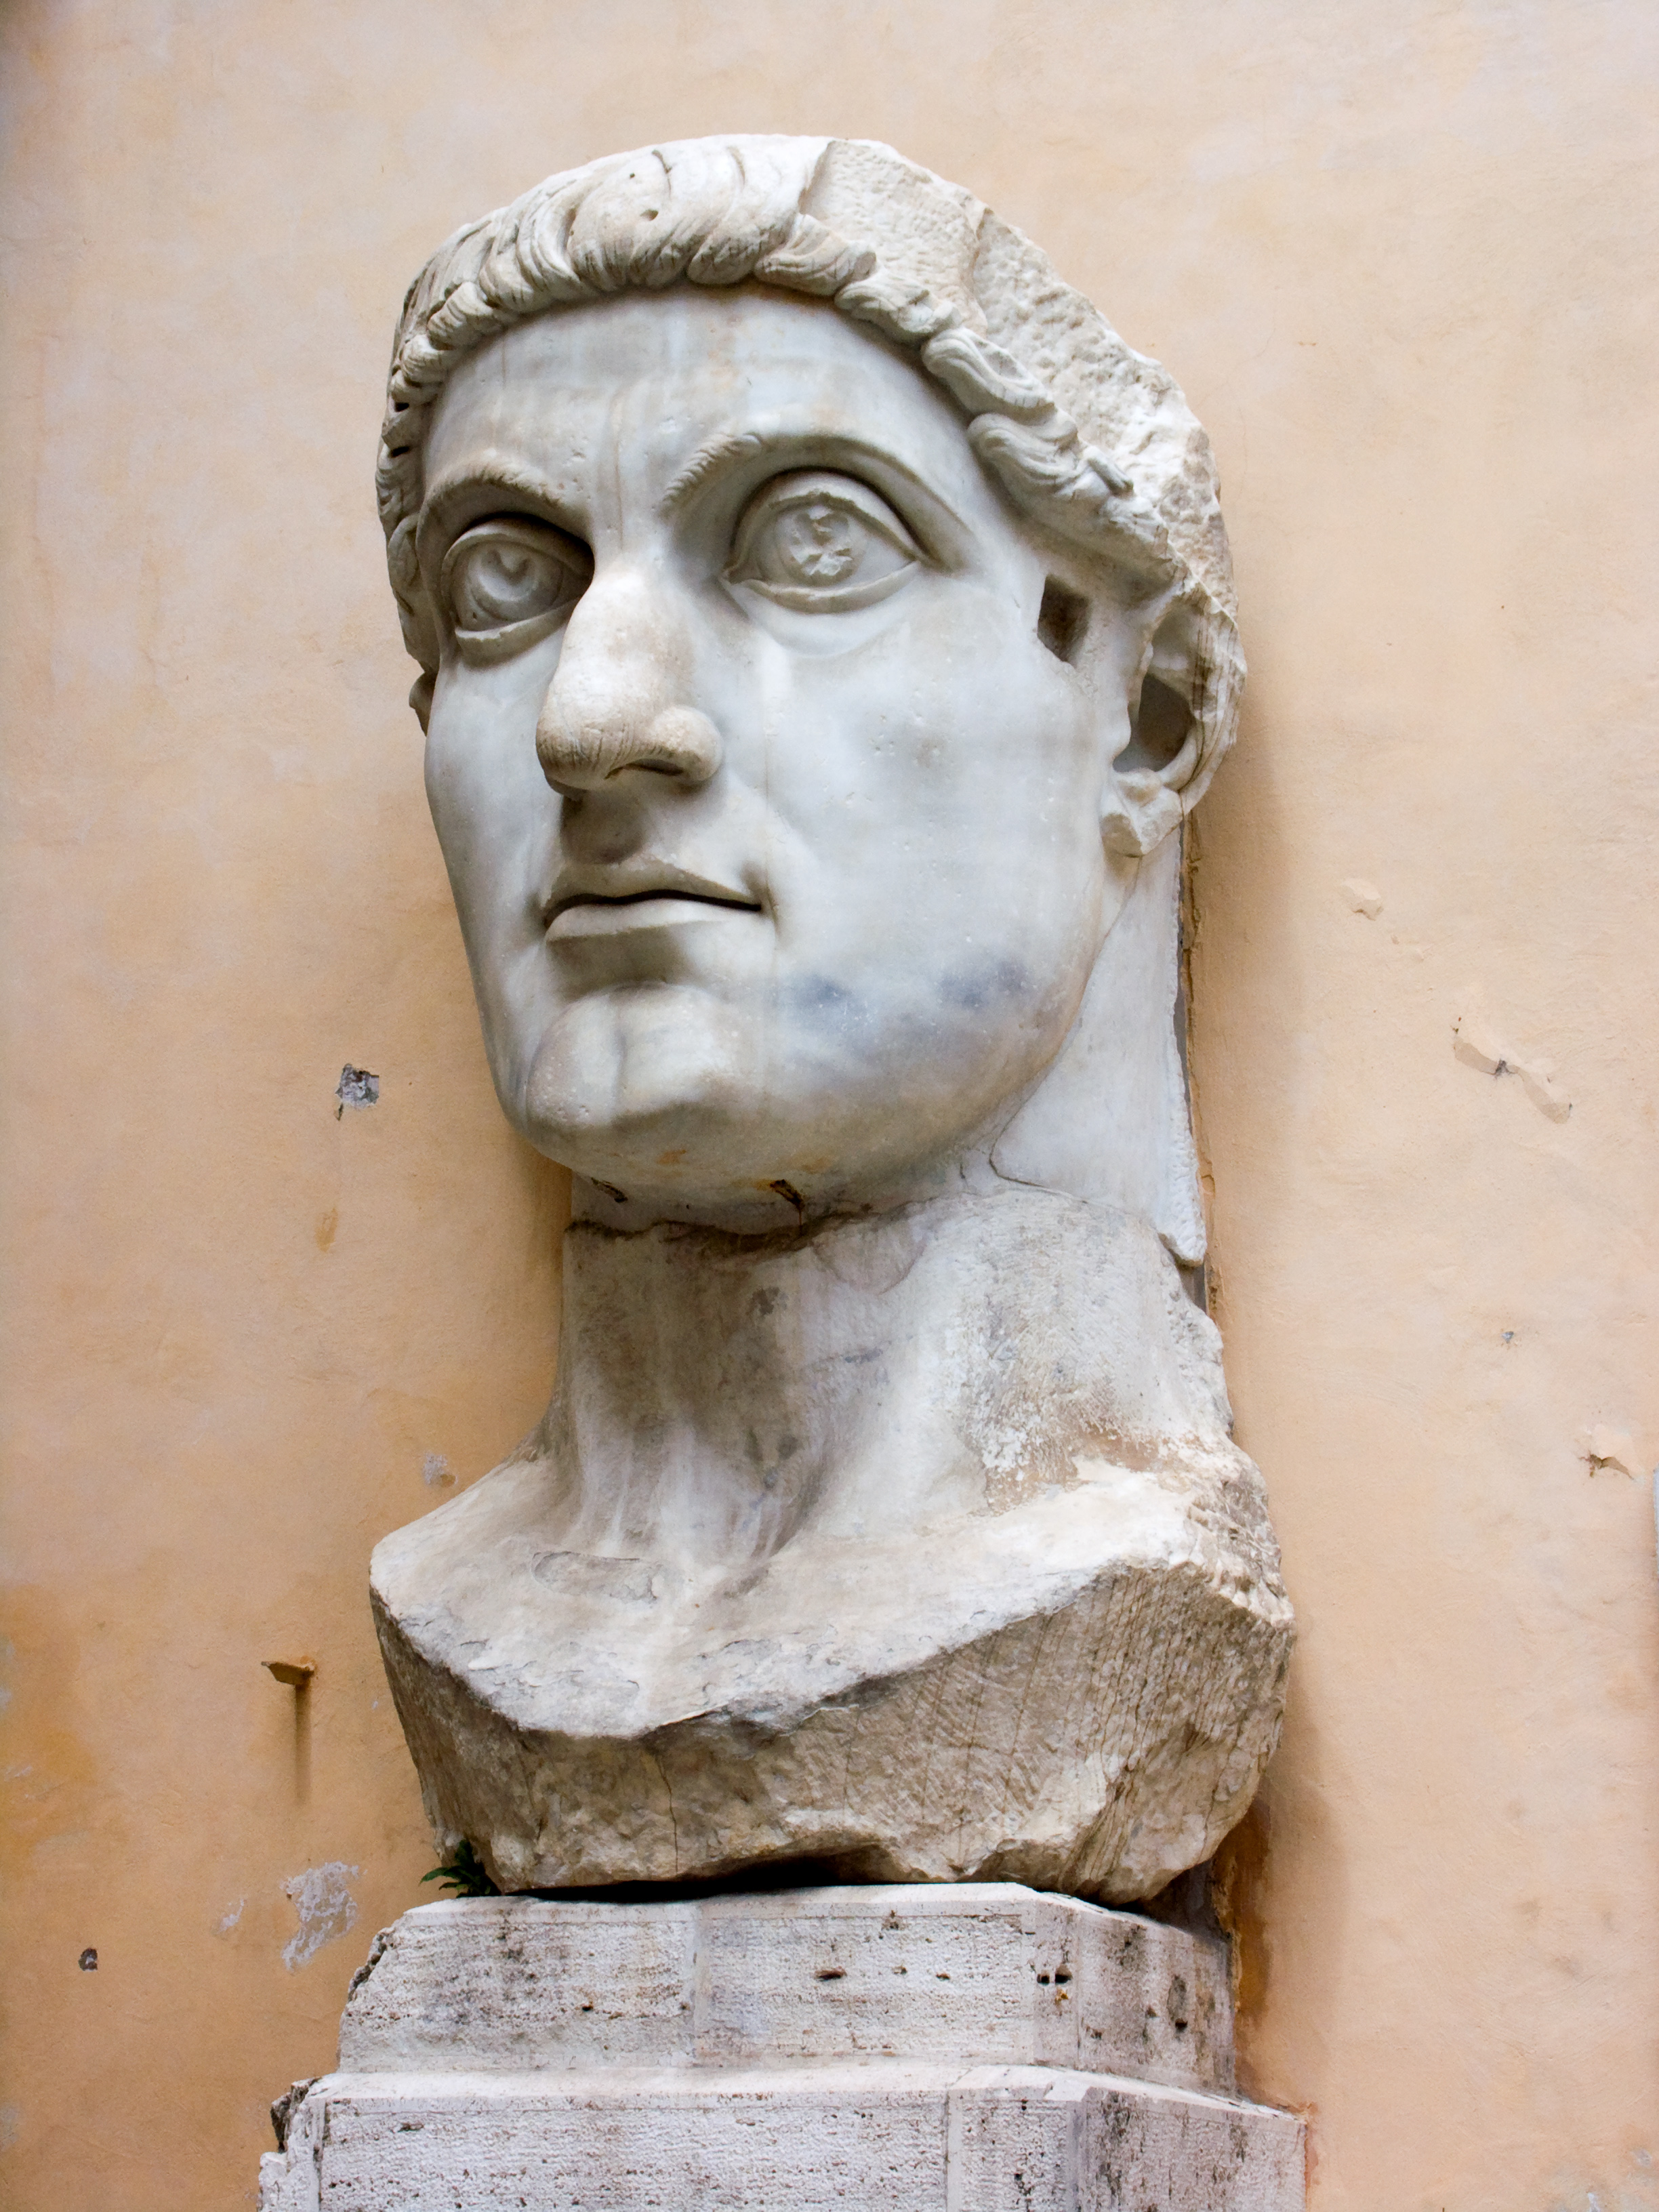 Roman Emperor Constantine, who converted to Christianity